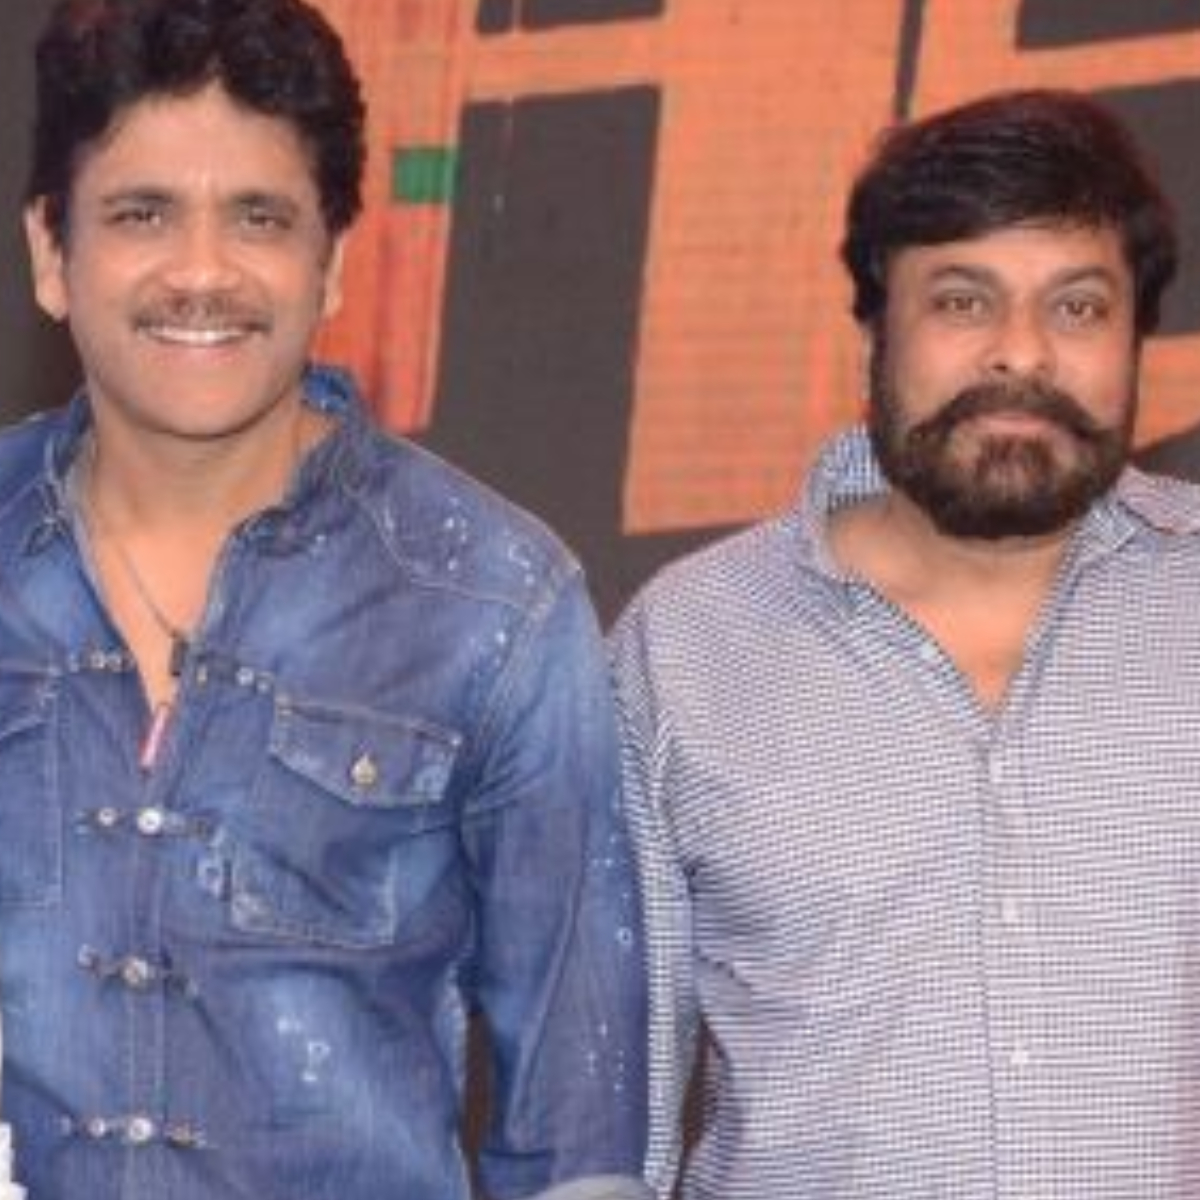 Nagarjuna Akkineni was in tears after watching Sye Raa Narasimha Reddy reveals Chiranjeevi